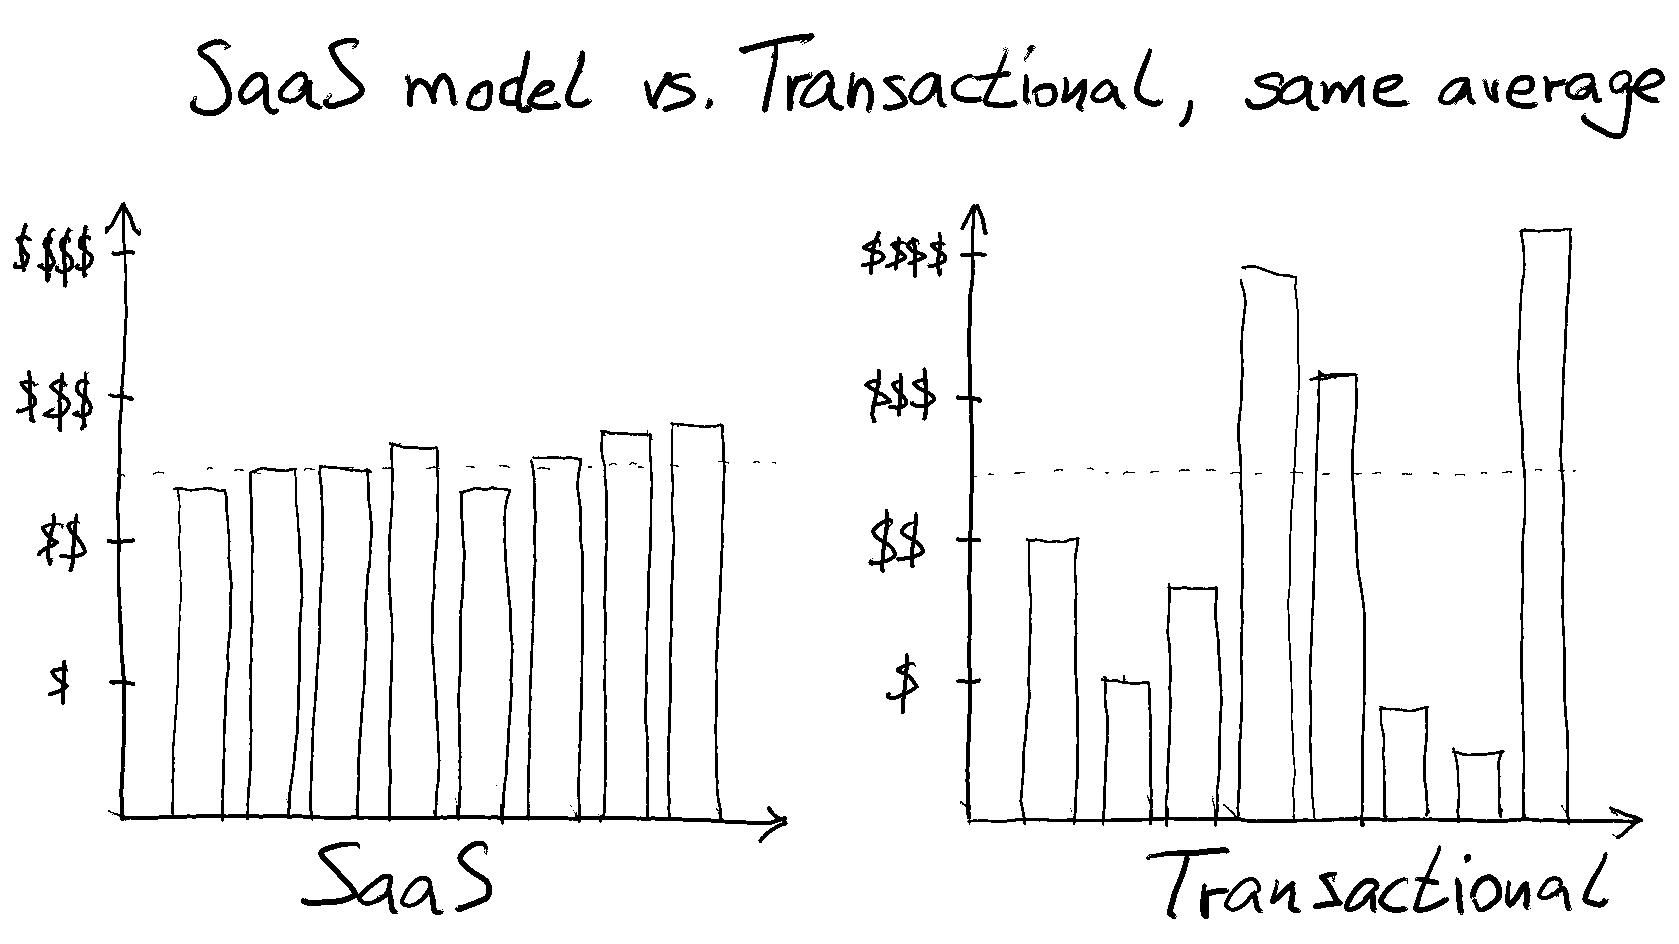 Charts illustrating typical month-by-month revenue for a SaaS business versus a business that sells transactionally.